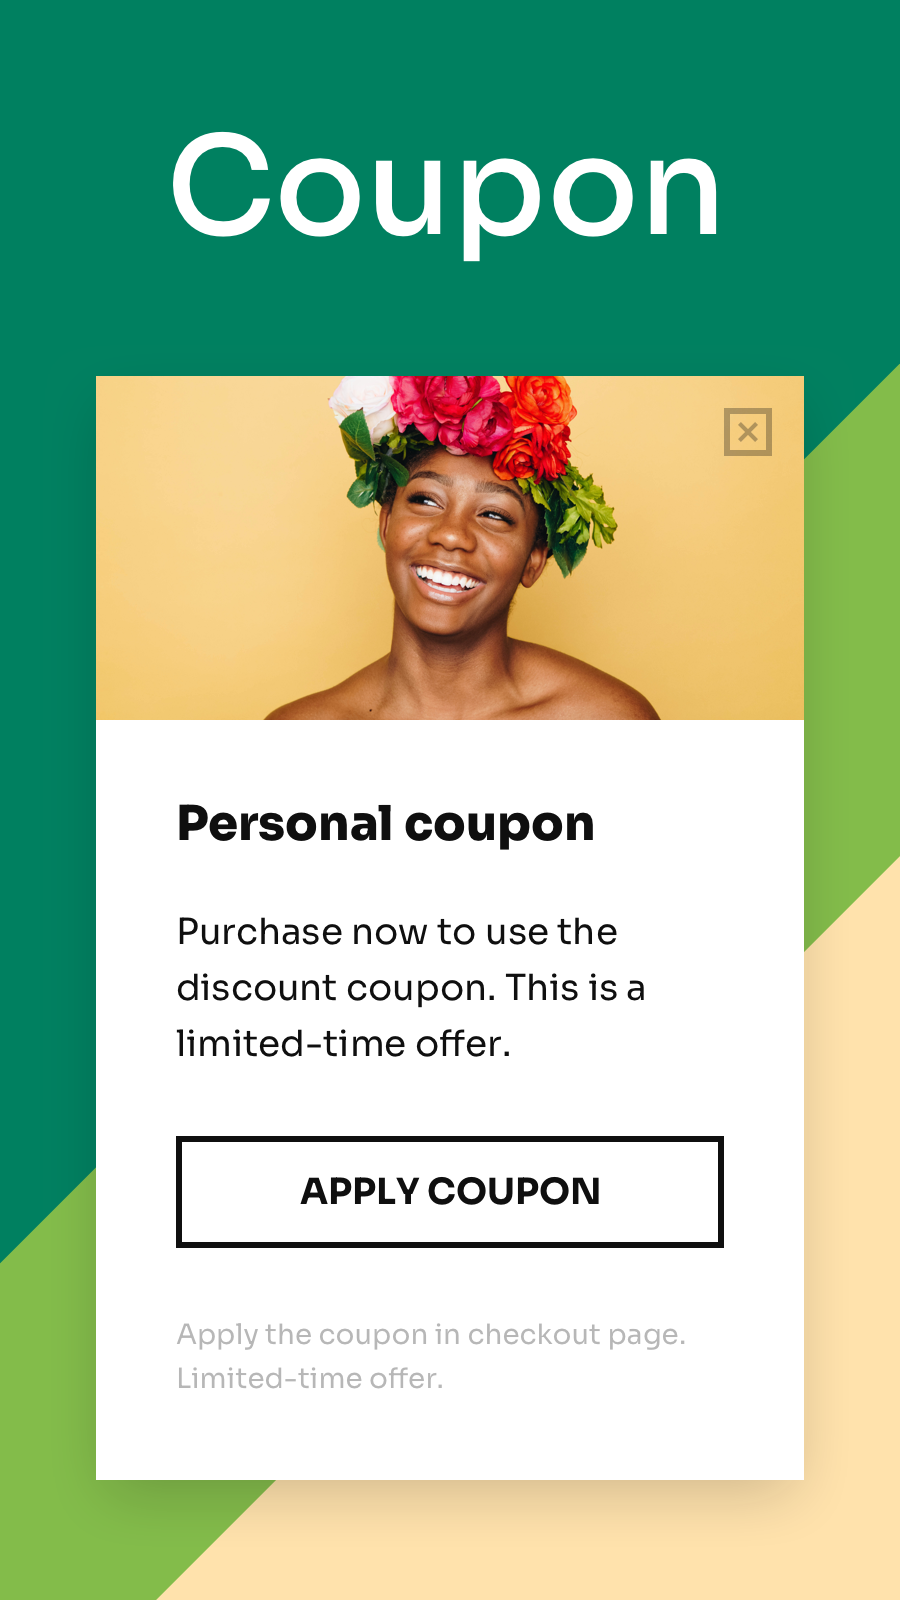 Promote coupons on mobile